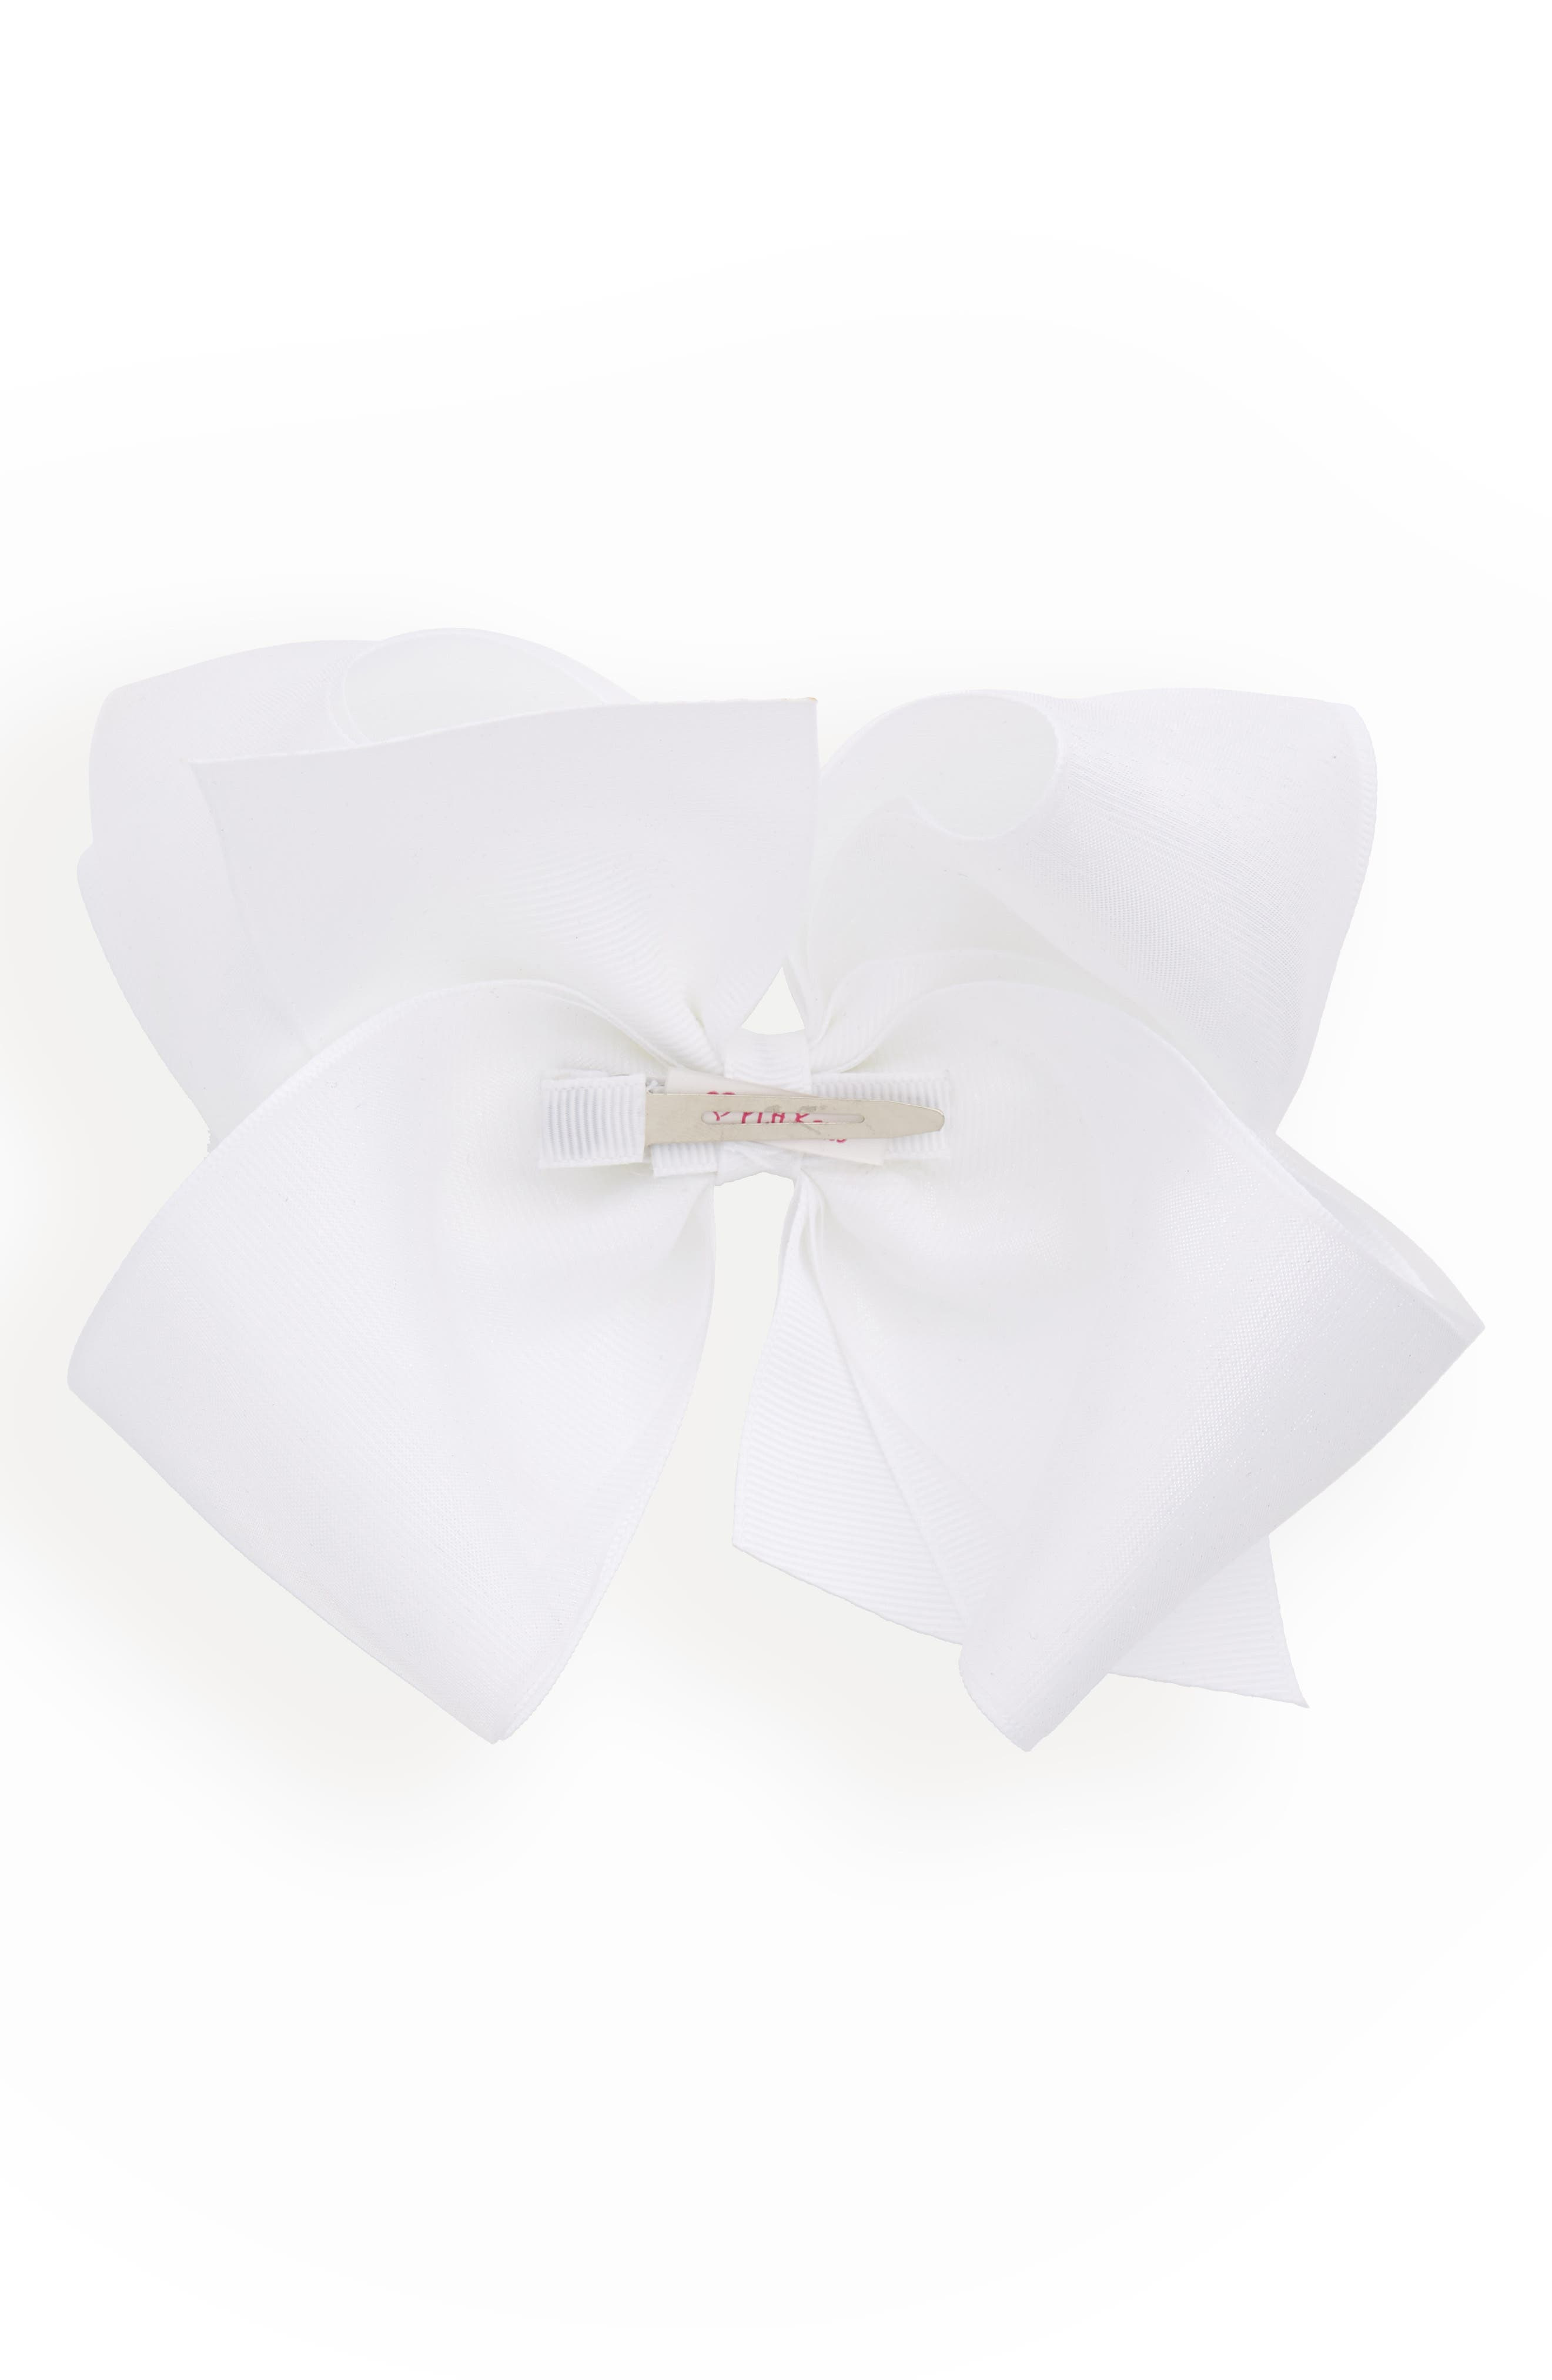 King Organza Overlay Bow Hair Clip,                             Alternate thumbnail 3, color,                             WHITE